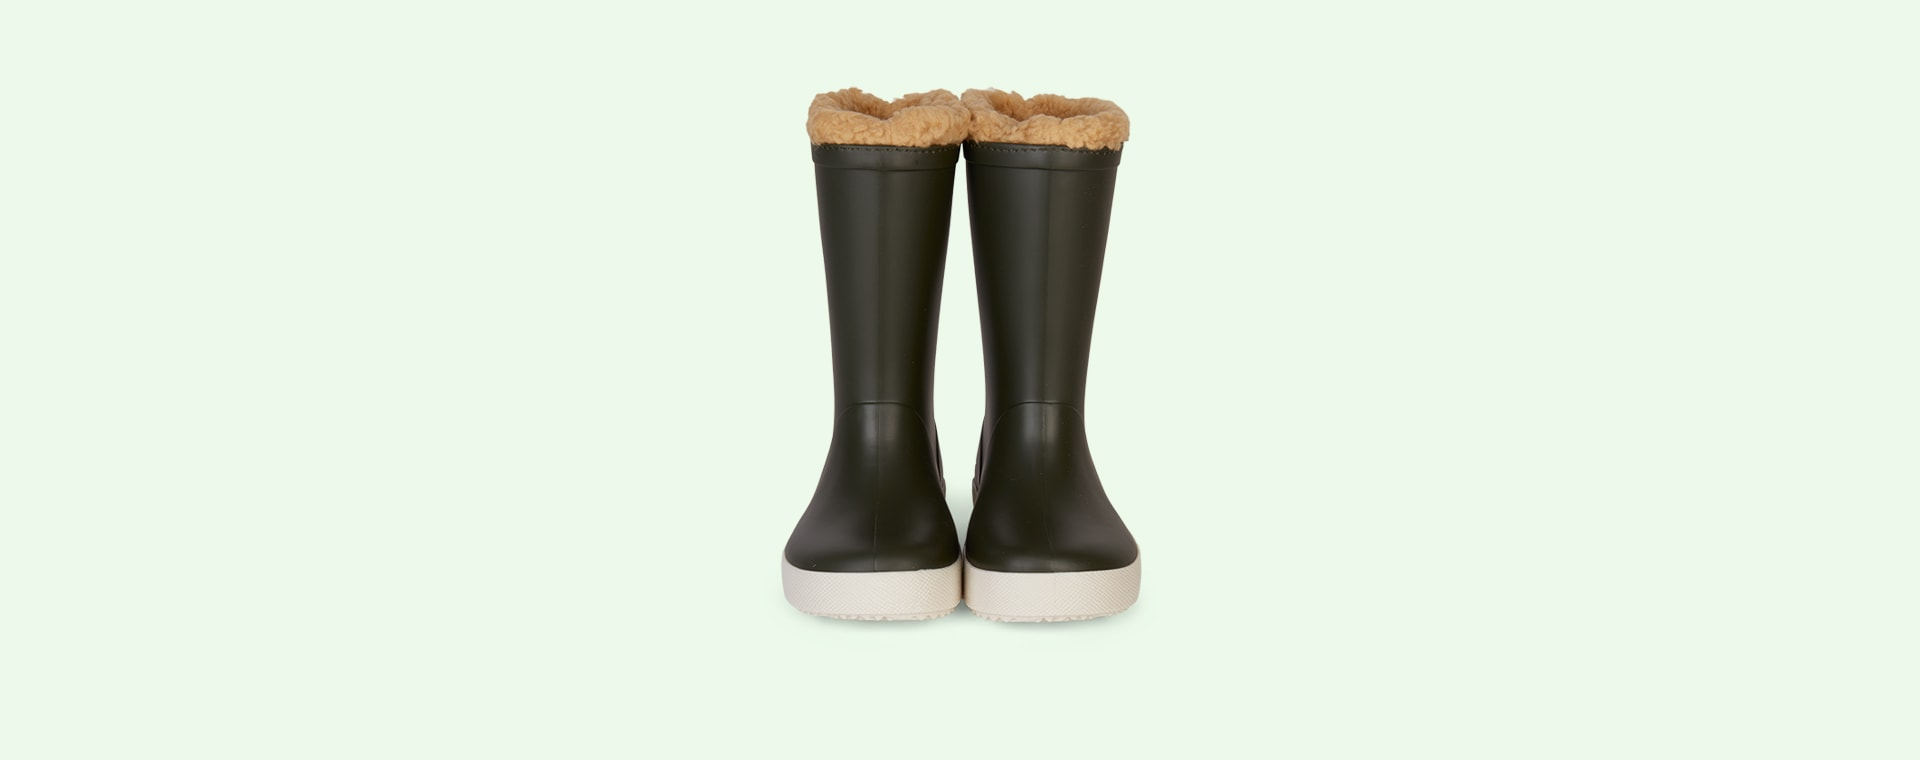 Khaki igor Splash Nautico Lined Wellies